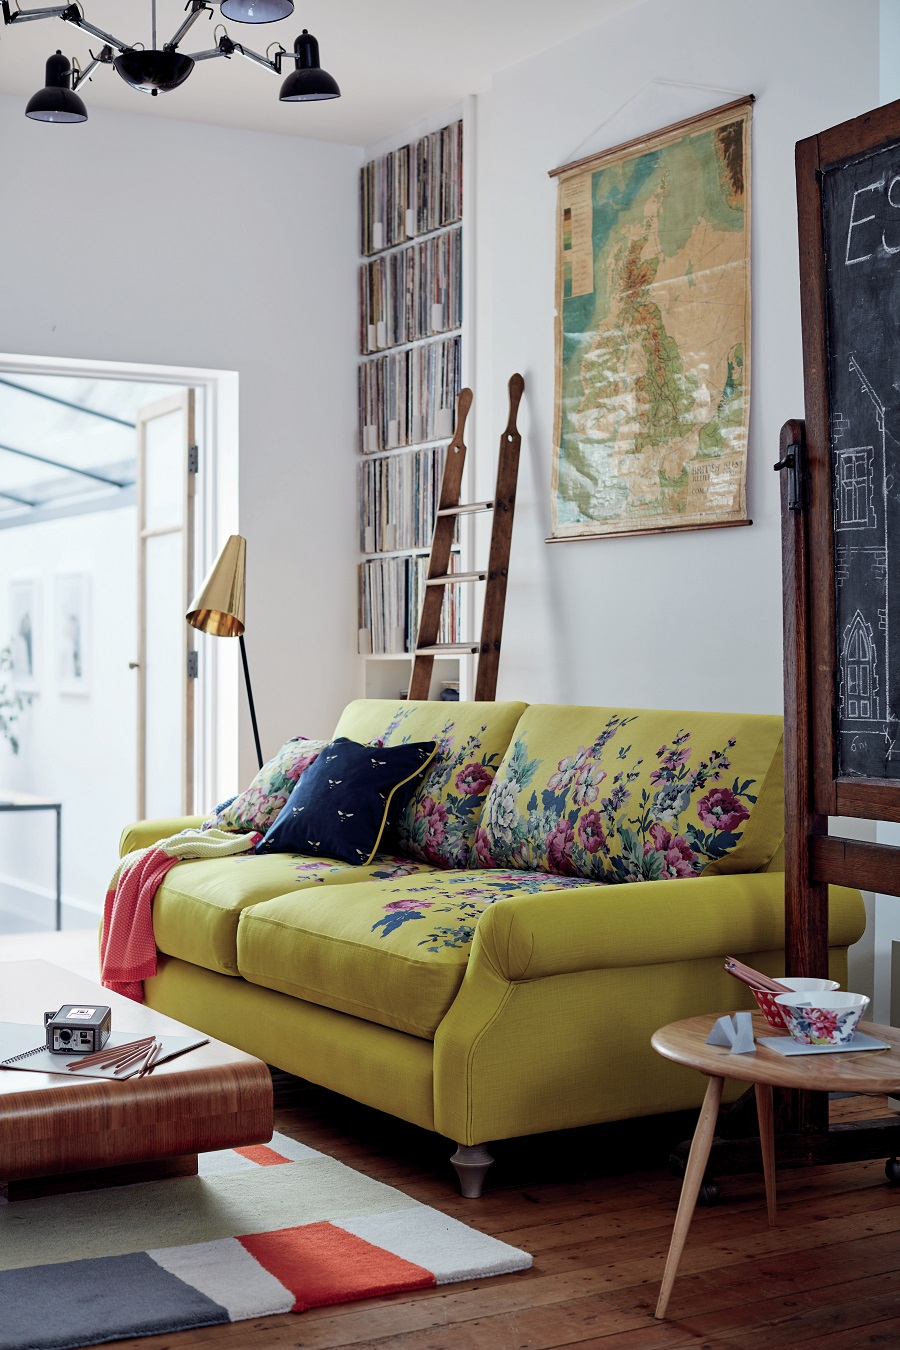 Sofa Colour Choice - yellow